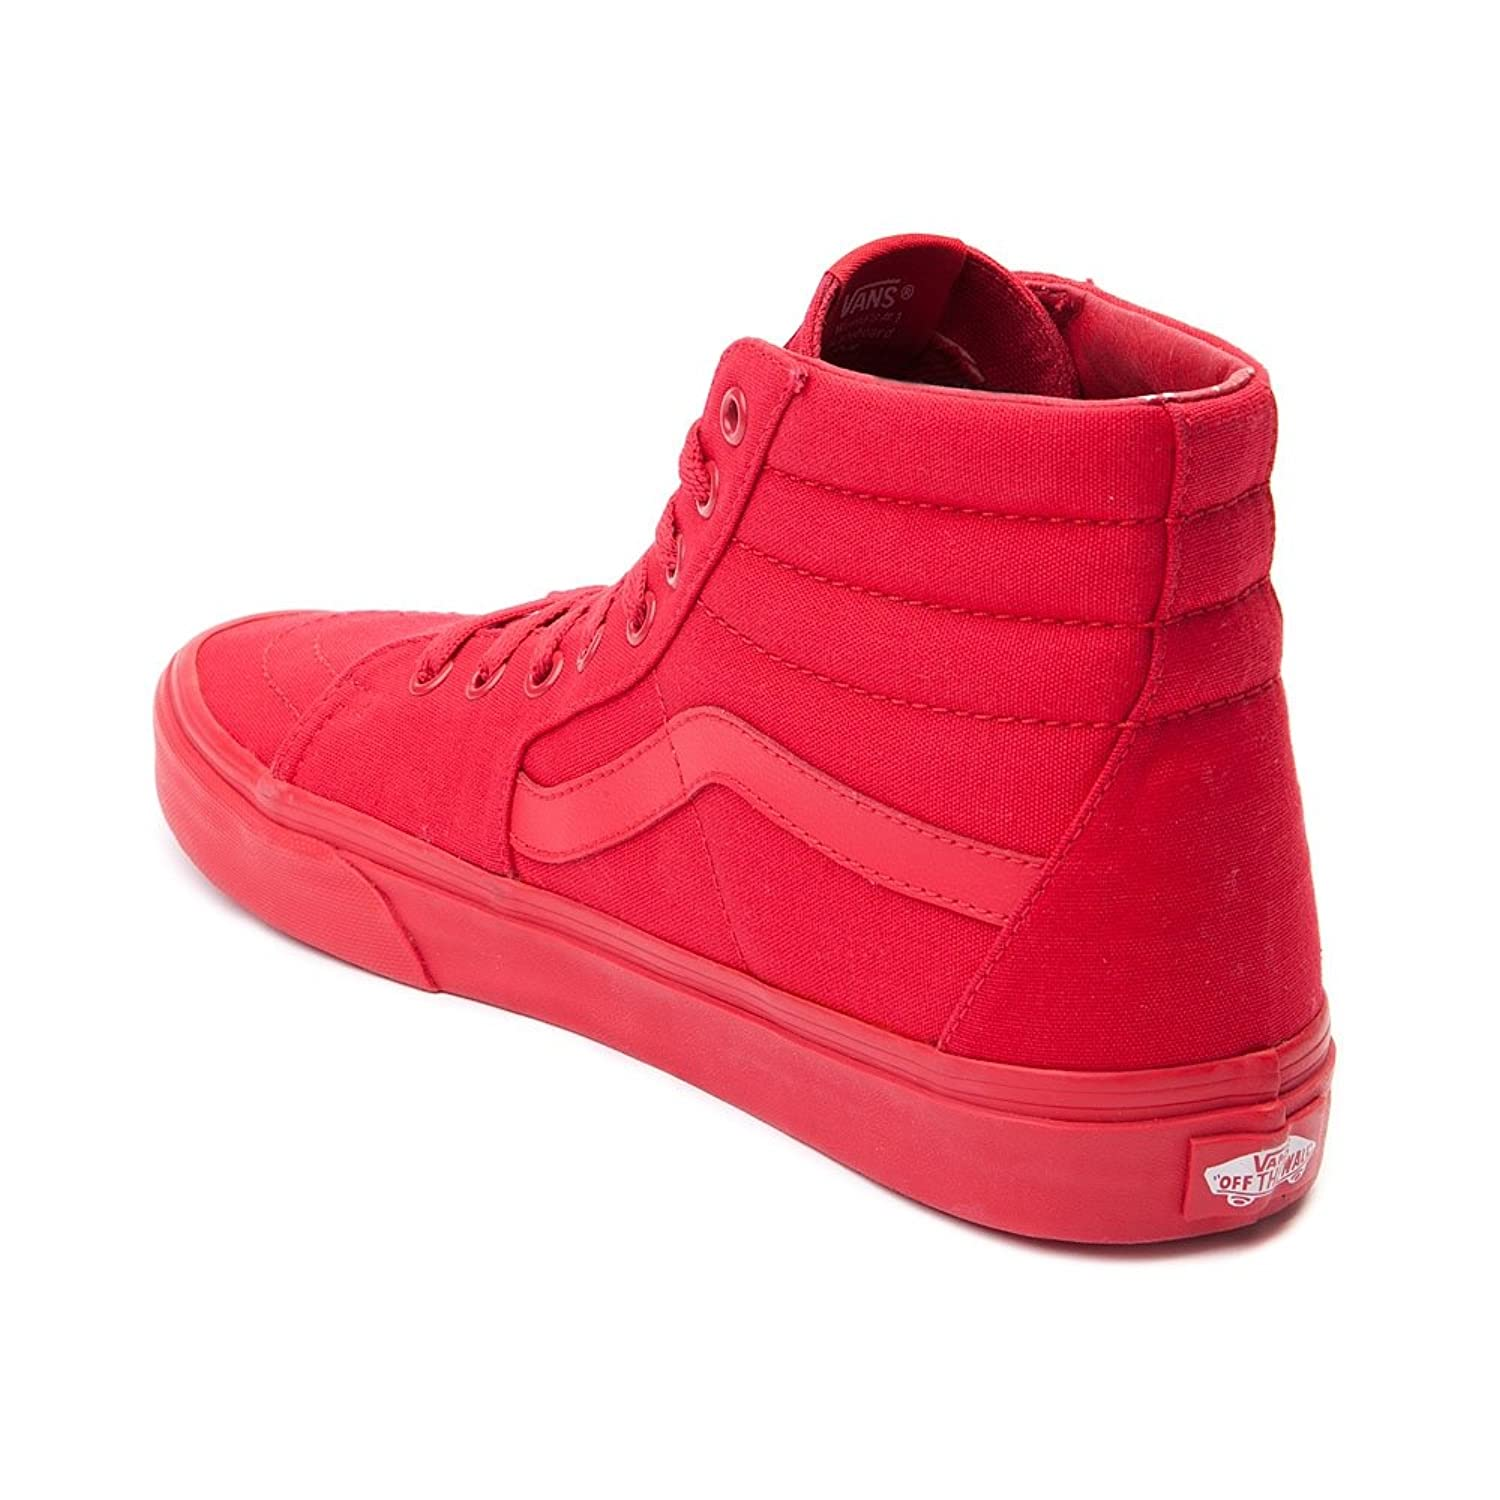 1754e63fdb09 all red vans shoes sale   OFF79% Discounts